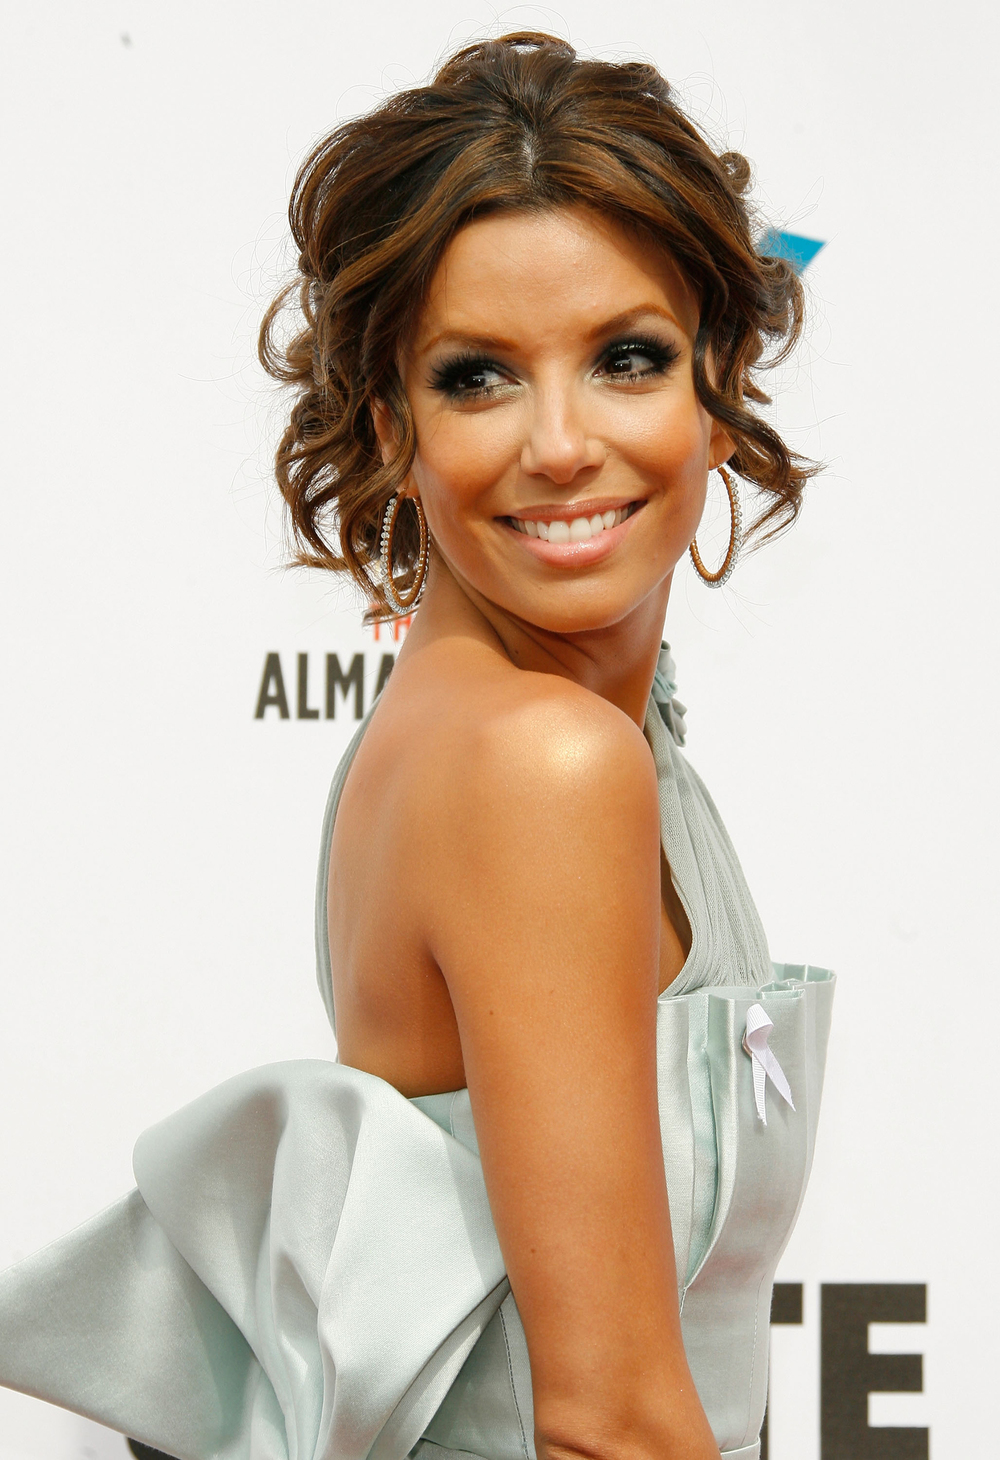 Eva Longoria wearing Simon Alcantara's 14kt yellow gold hoops hand woven with blue topaz at the Alma awards